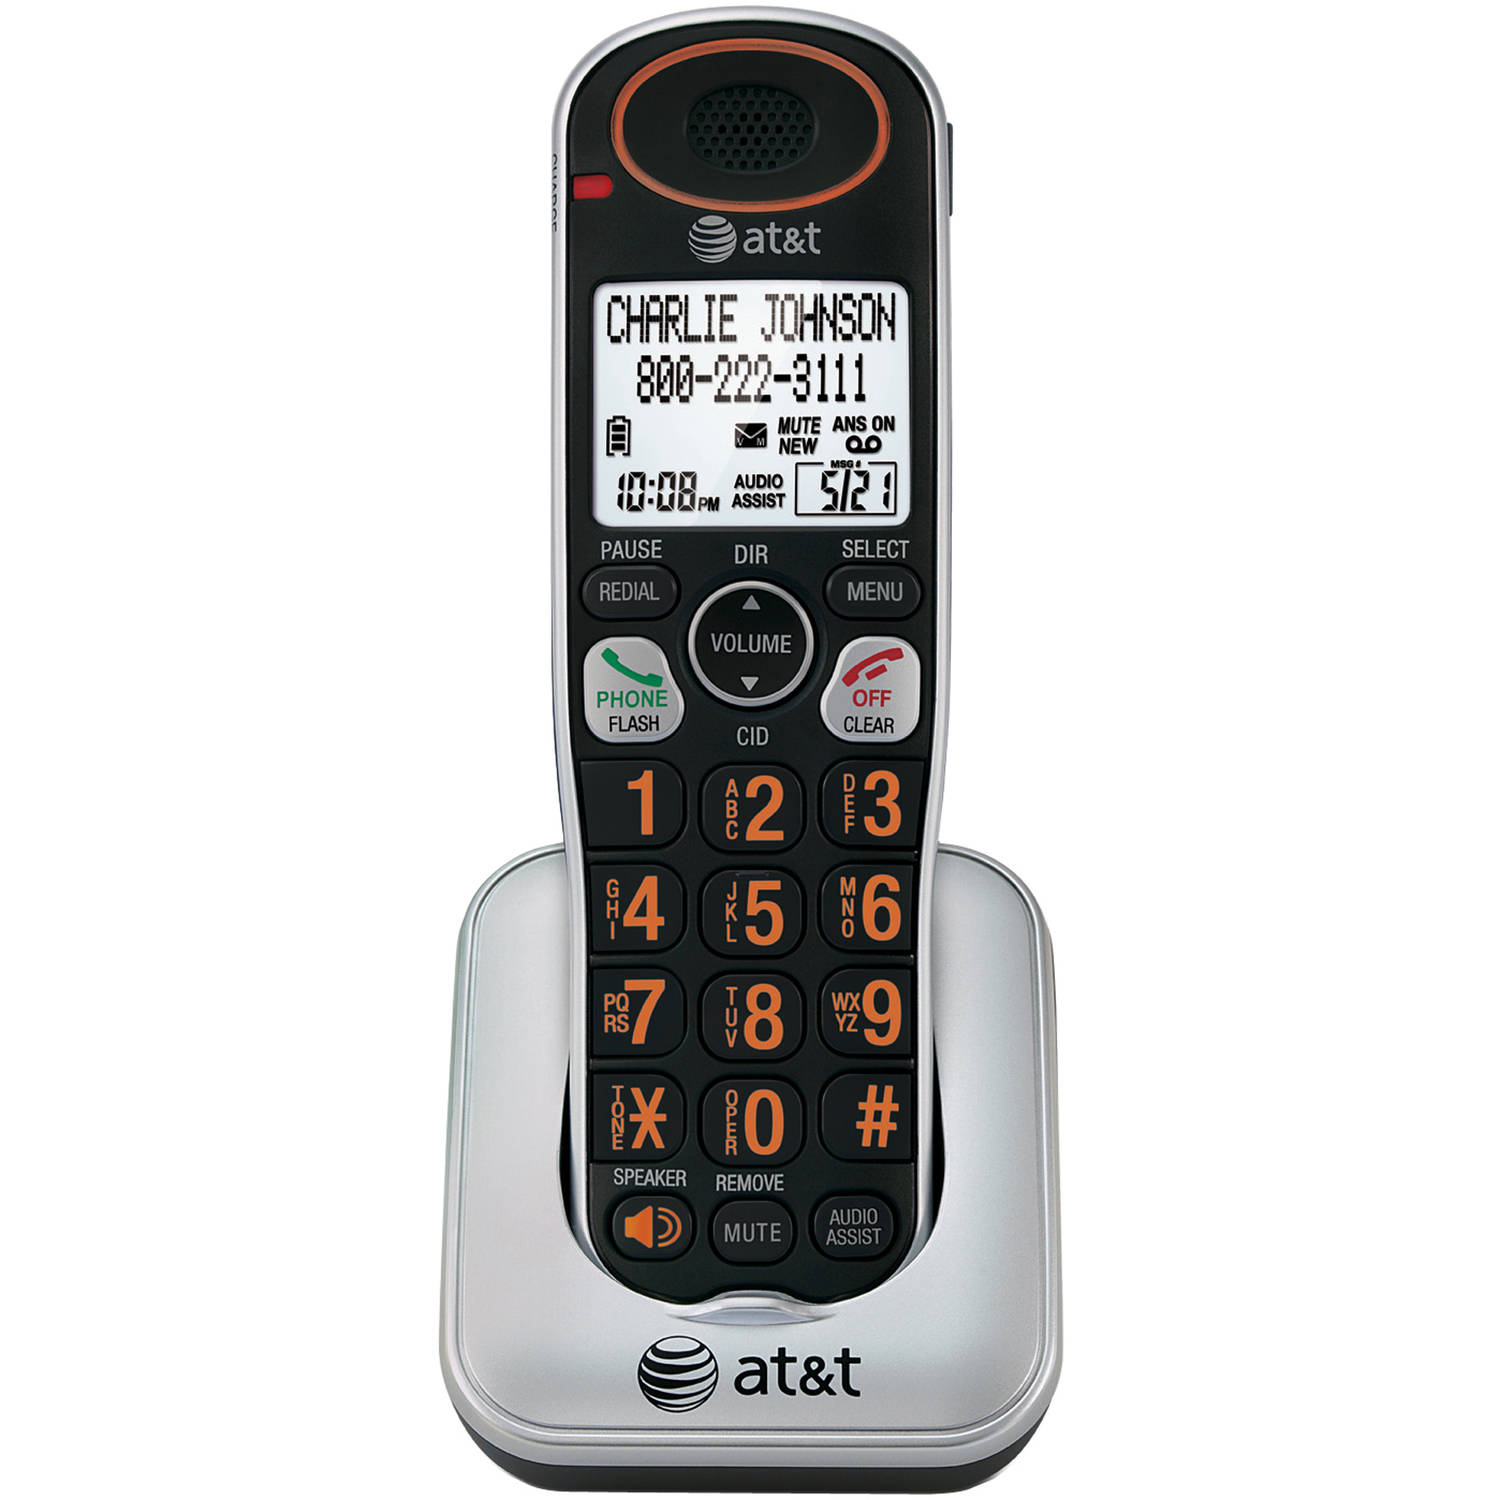 AT&T TL30100 Handset / Charger Large Backlit LCD Display Eco-Friendly Phone